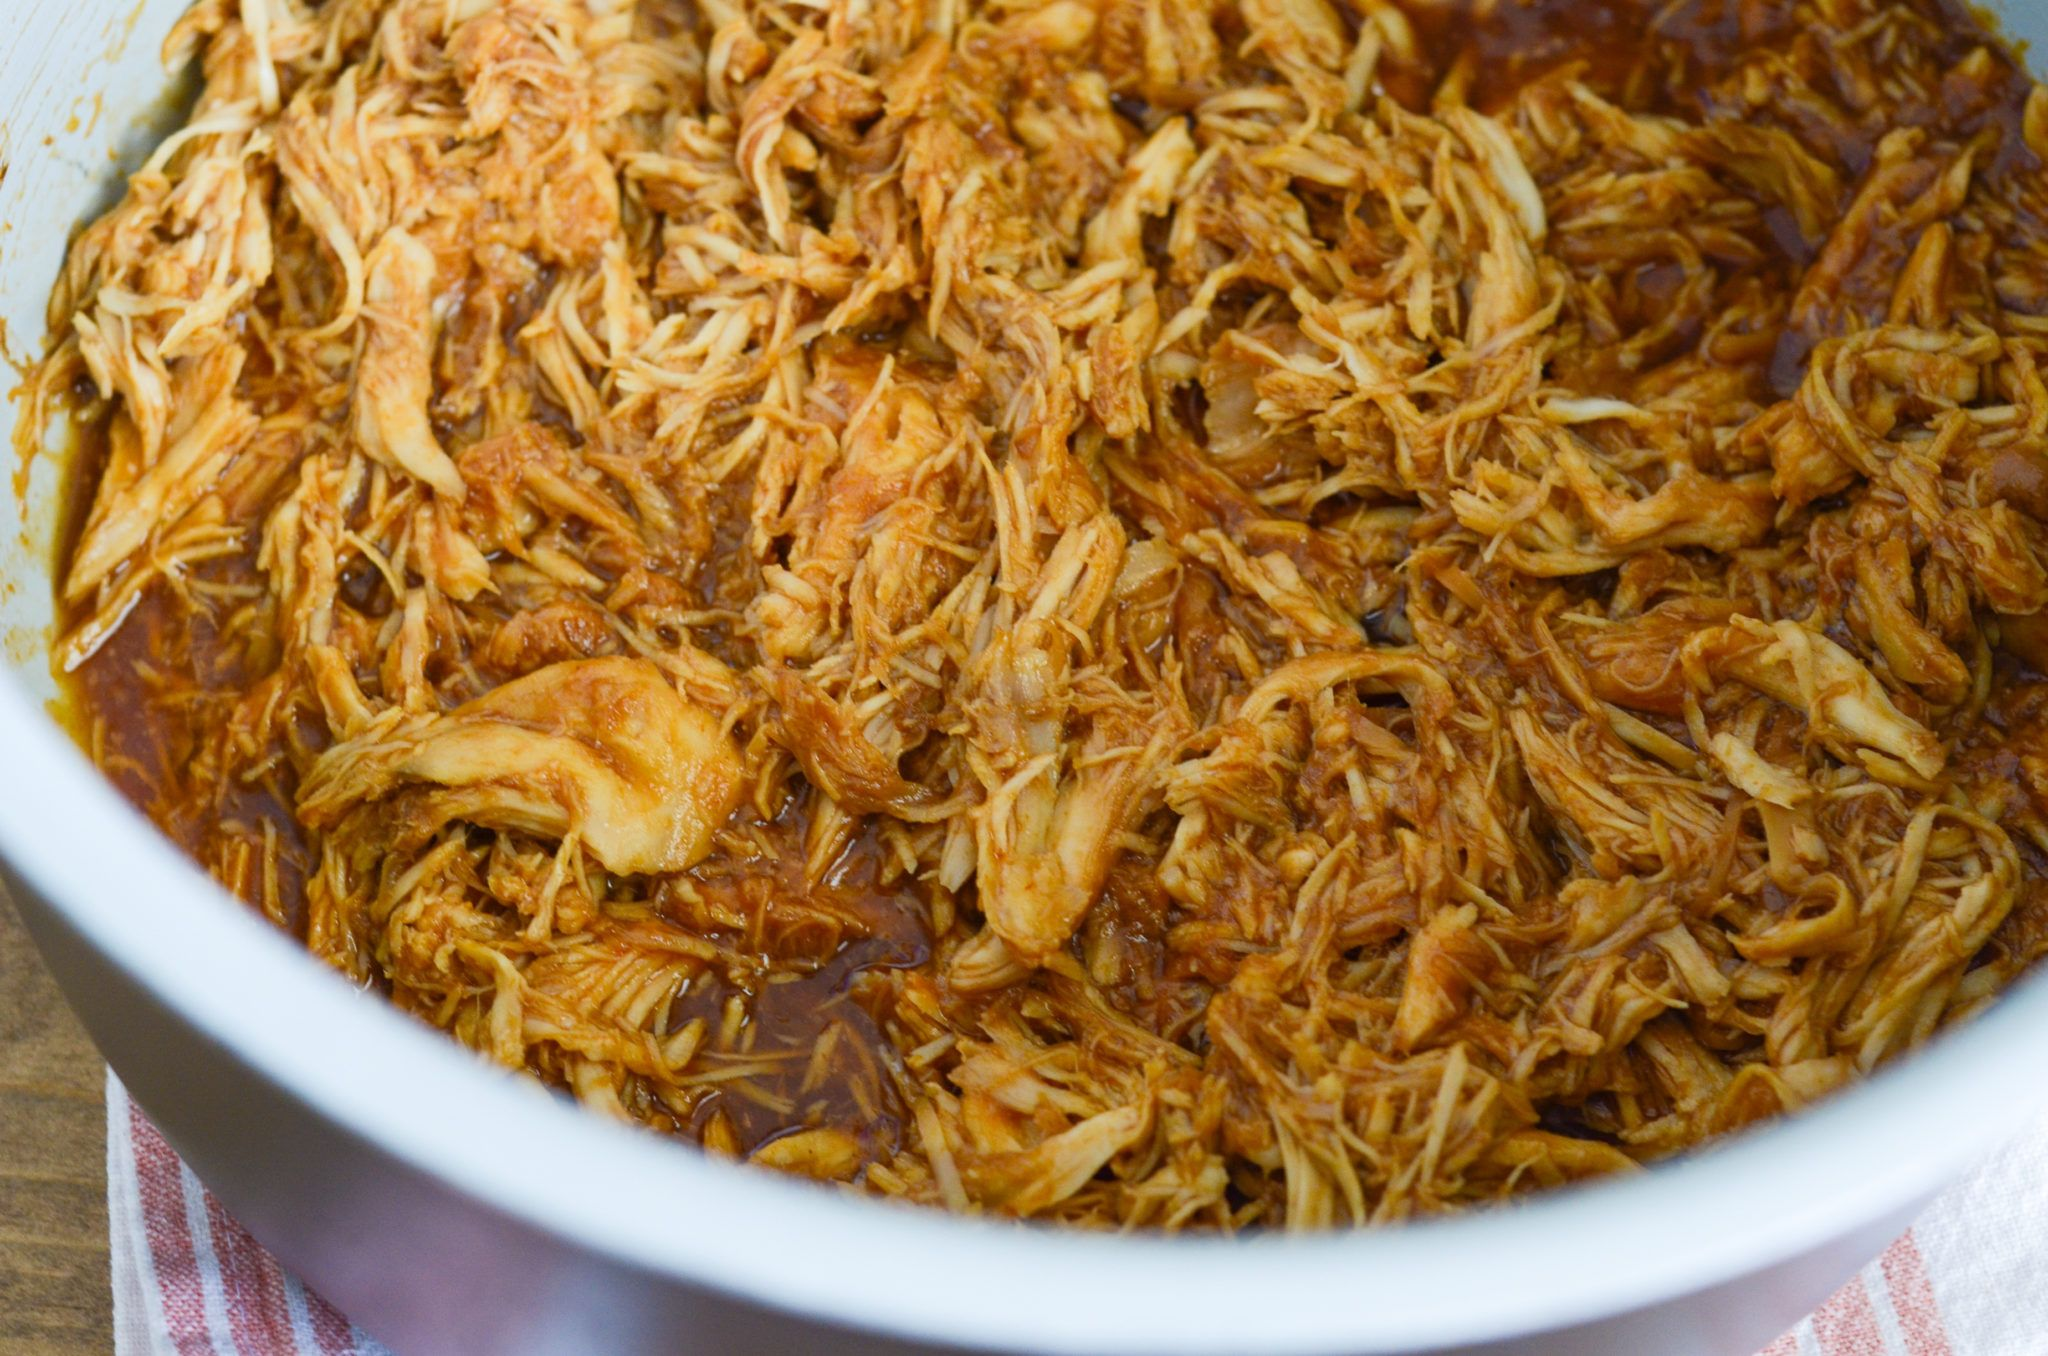 Ninja Foodi Slow Cooker Bbq Chicken Recipe Slow Cooker Bbq Chicken Chicken Slow Cooker Recipes Slow Cooker Shredded Chicken